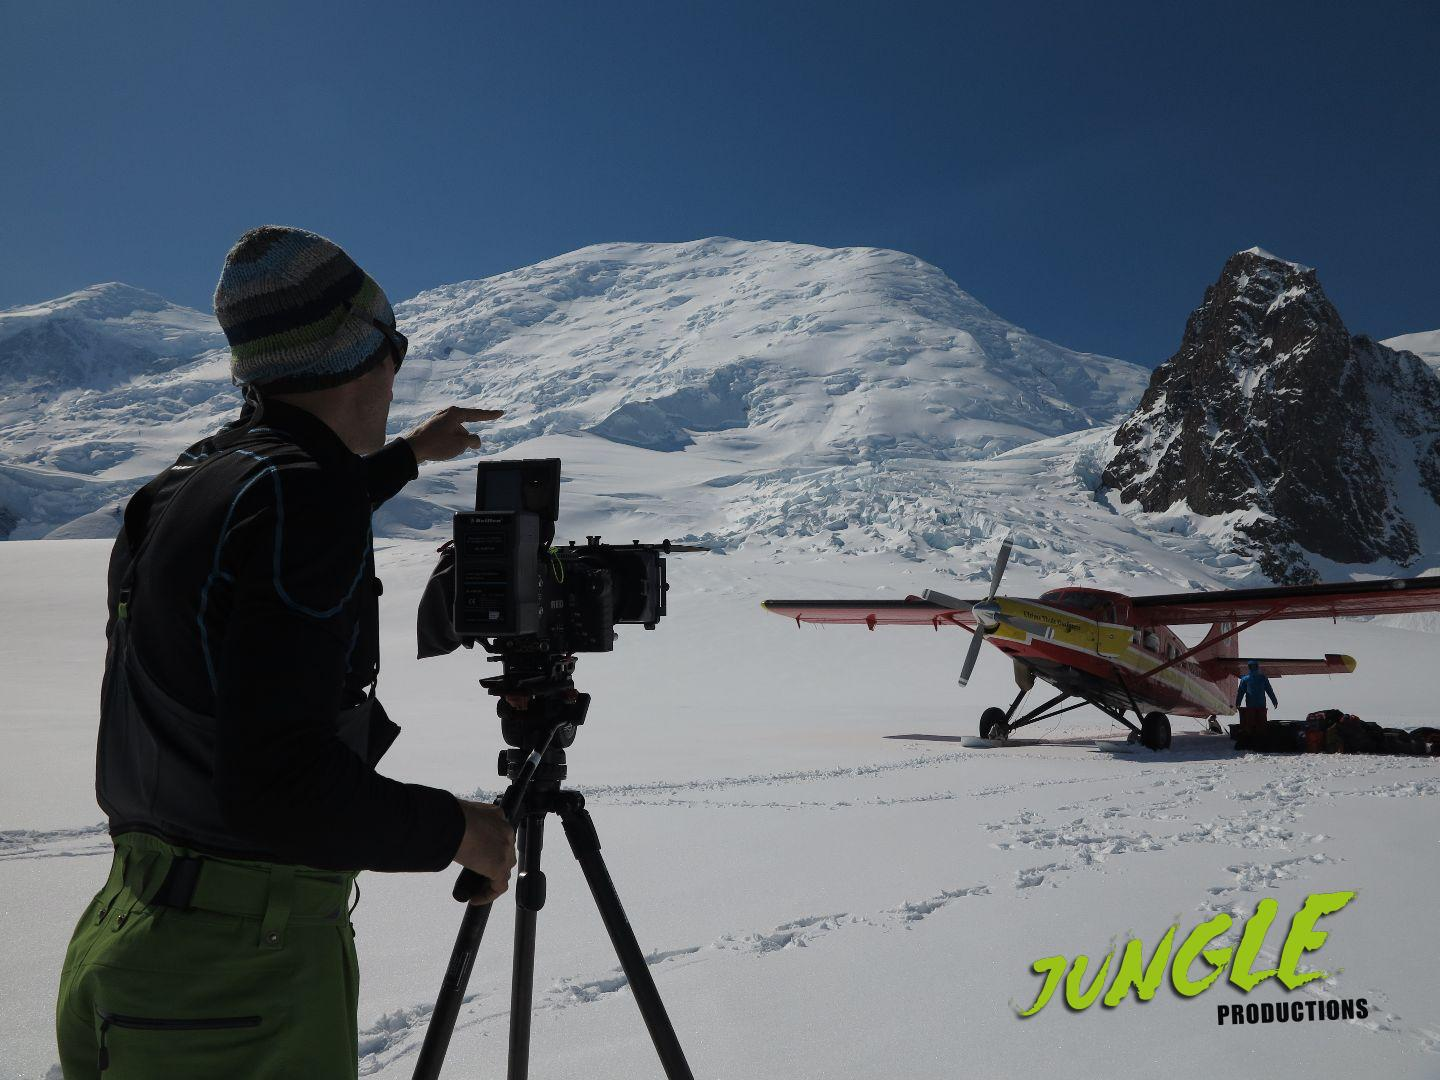 Alaska Mountaineering with Kites - 2014